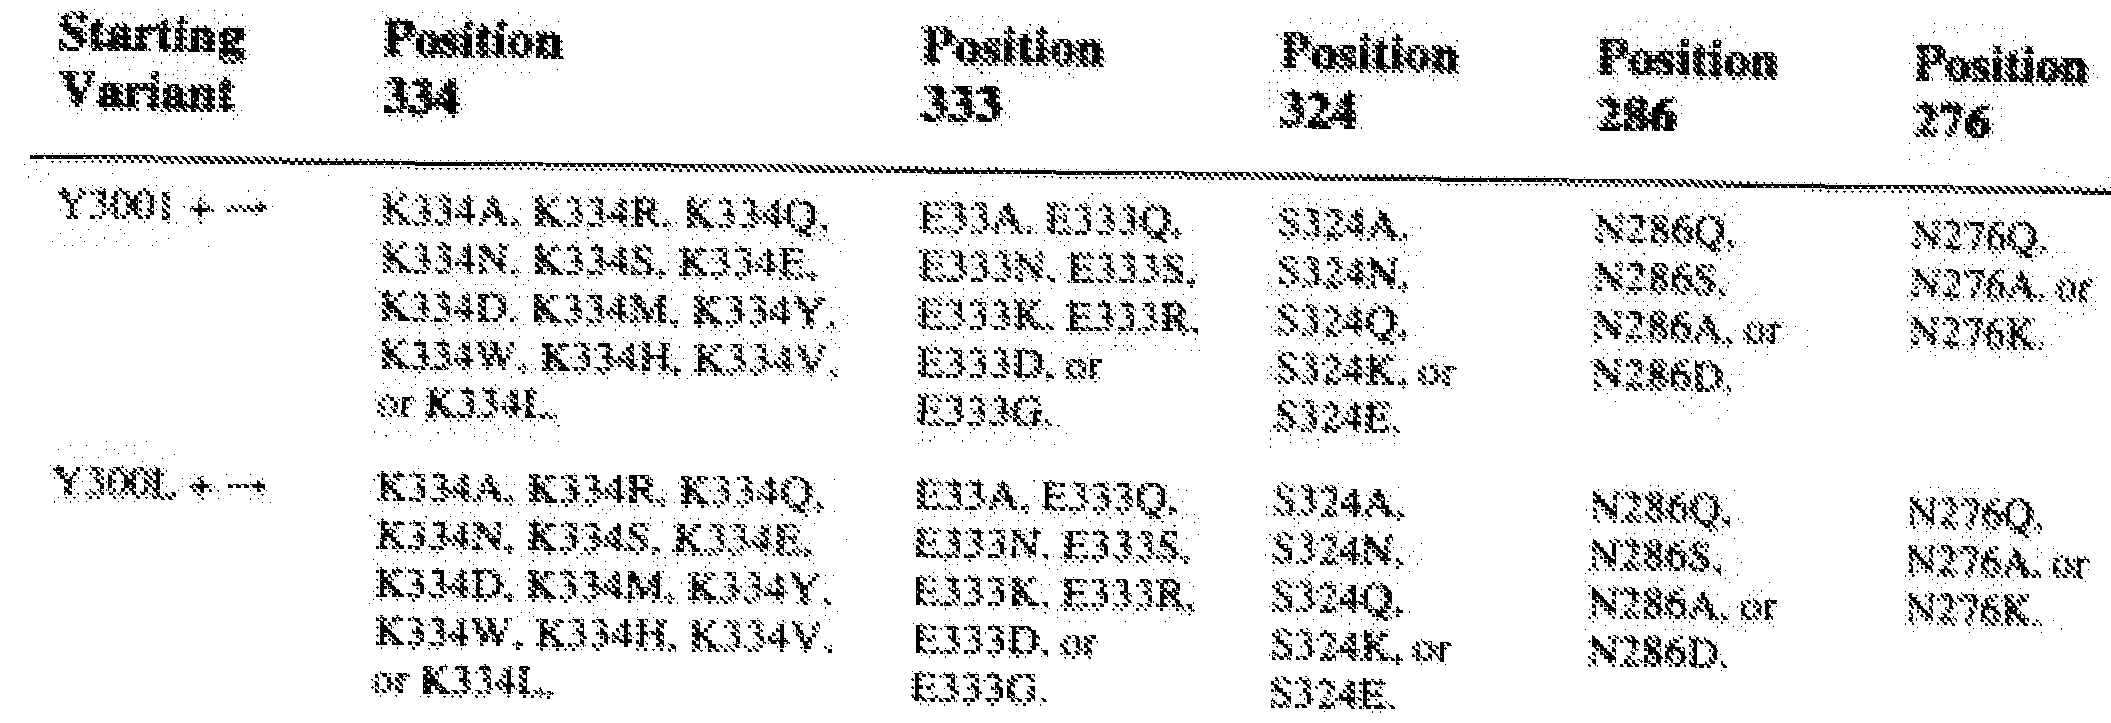 WO2006088494A9 - Identification and engineering of antibodies with